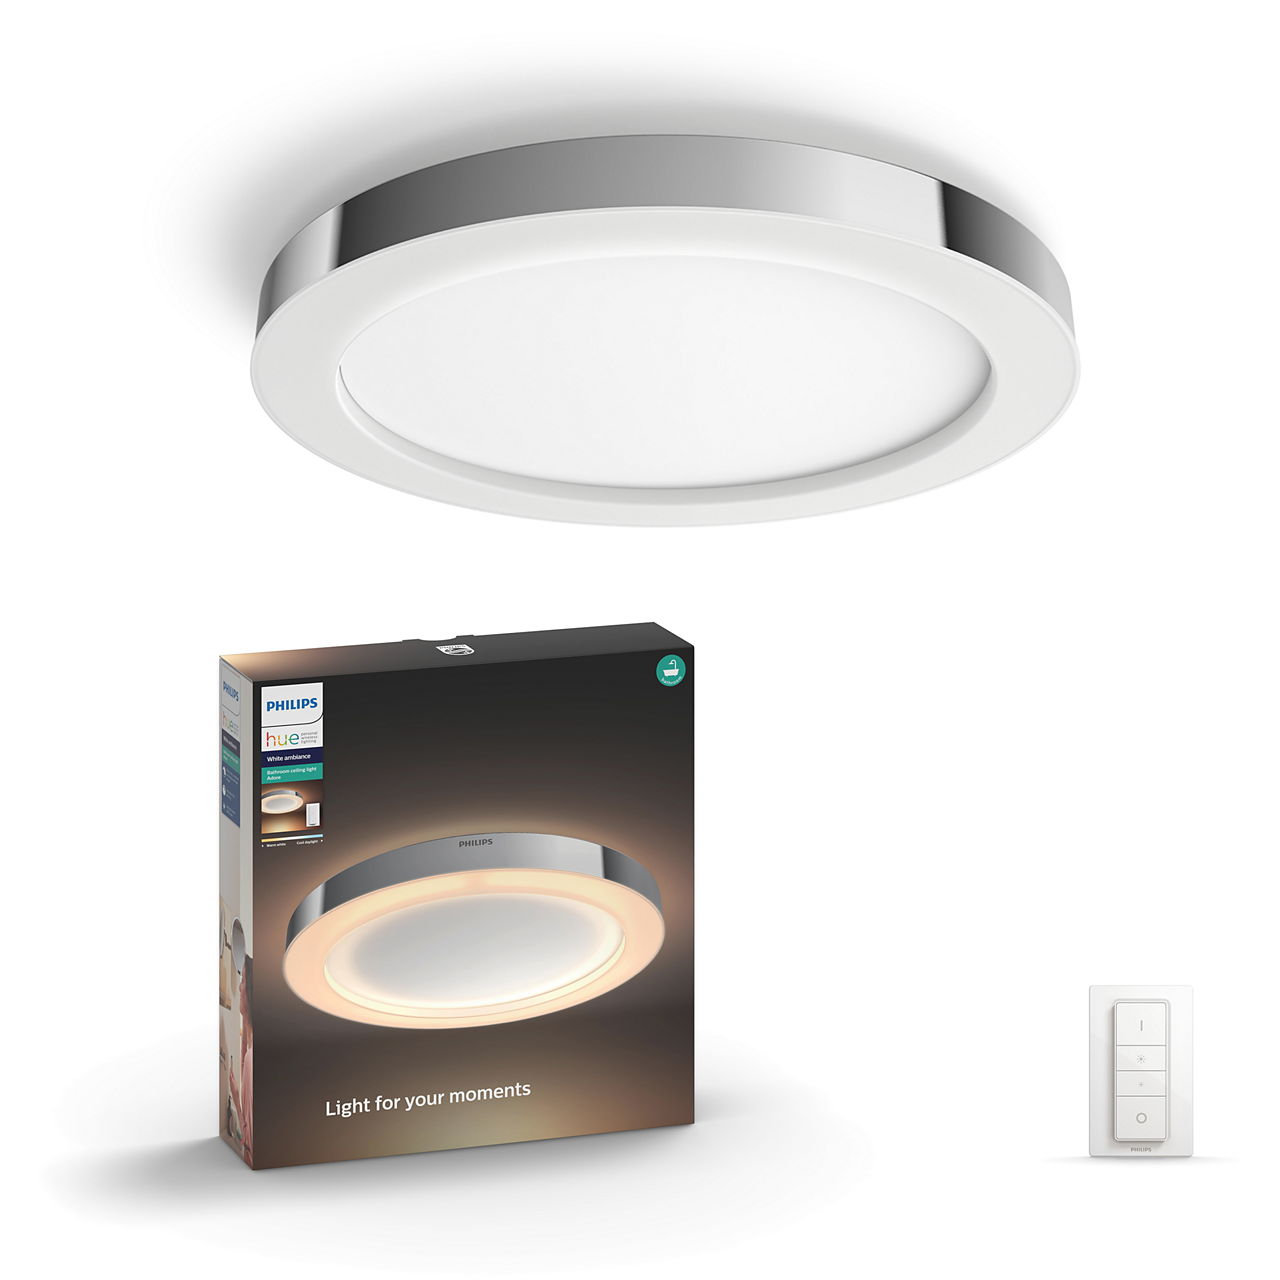 Philips Adore Hue Ceiling Lamp Chrome In 2020 Ceiling Lamp Led Globe Lights Hue